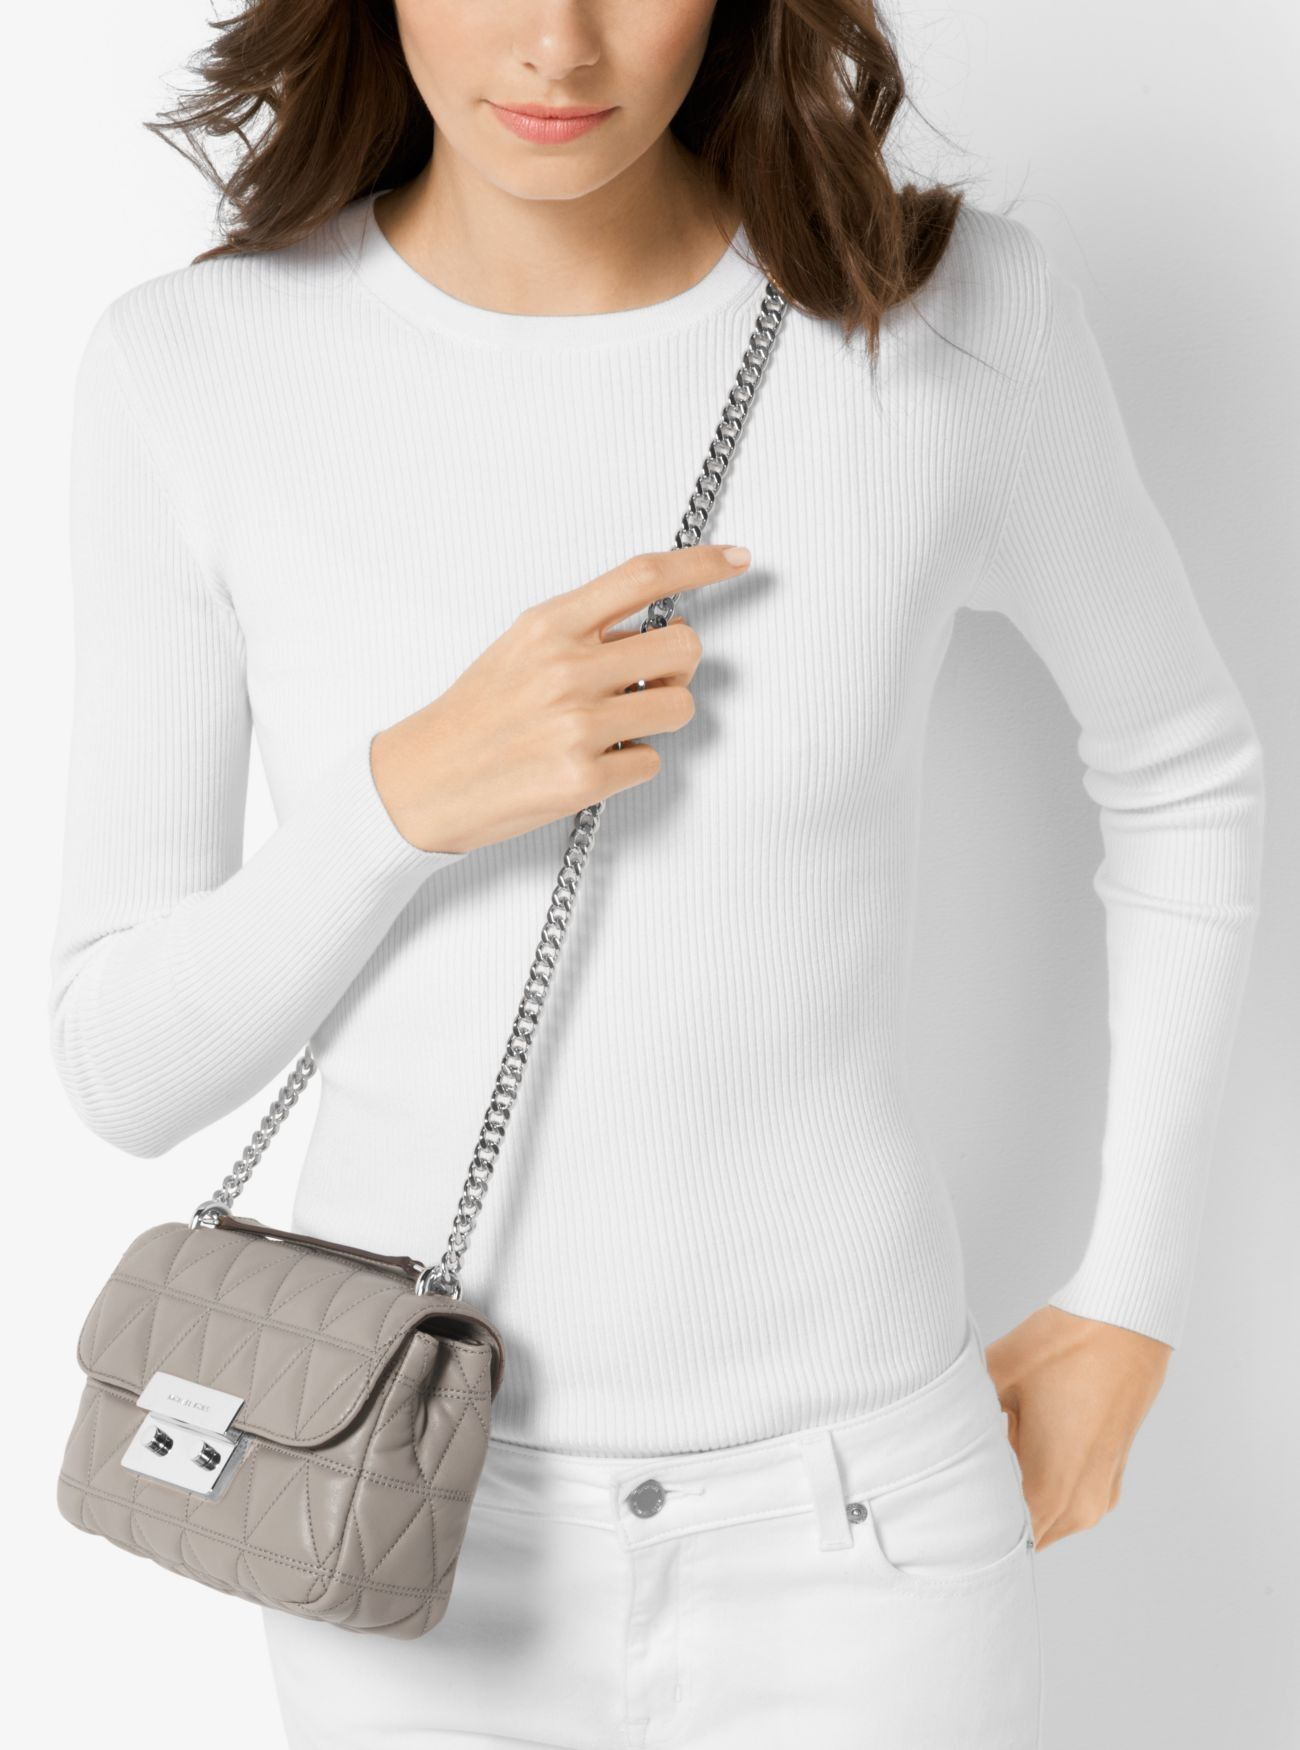 278256df1391 Online Michael Kors Pearl Grey Sloan Small Quilted-Leather Shoulder Bag Sale